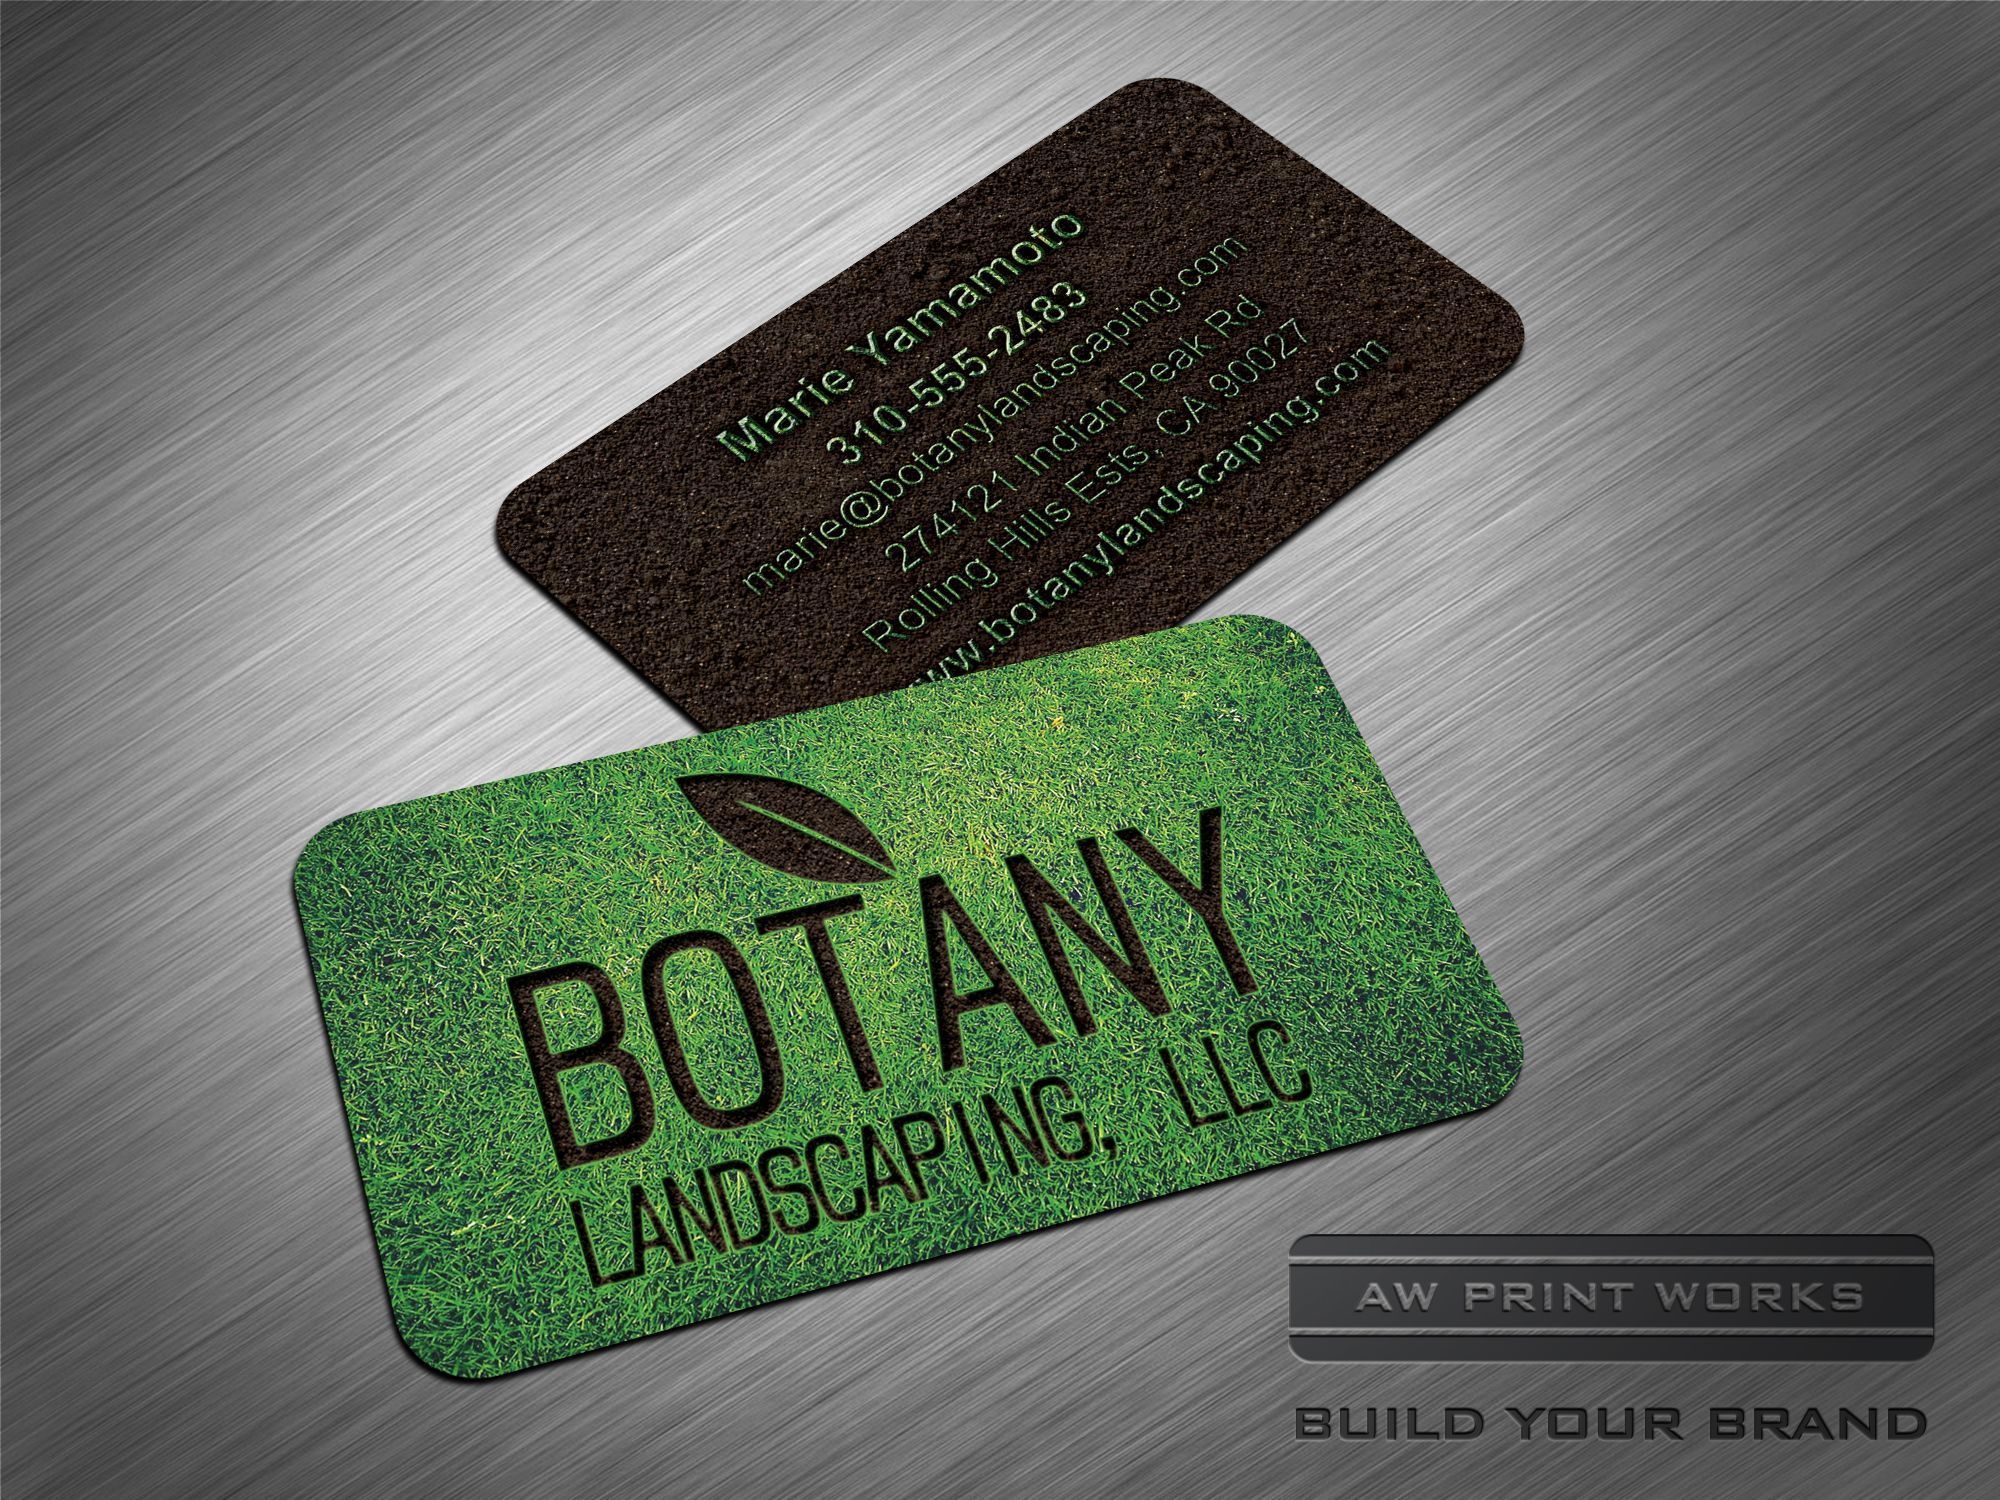 Pin By Aw Print Works On Concepts From Our Design Team Business Cards Creative Card Design Landscaping Business Cards